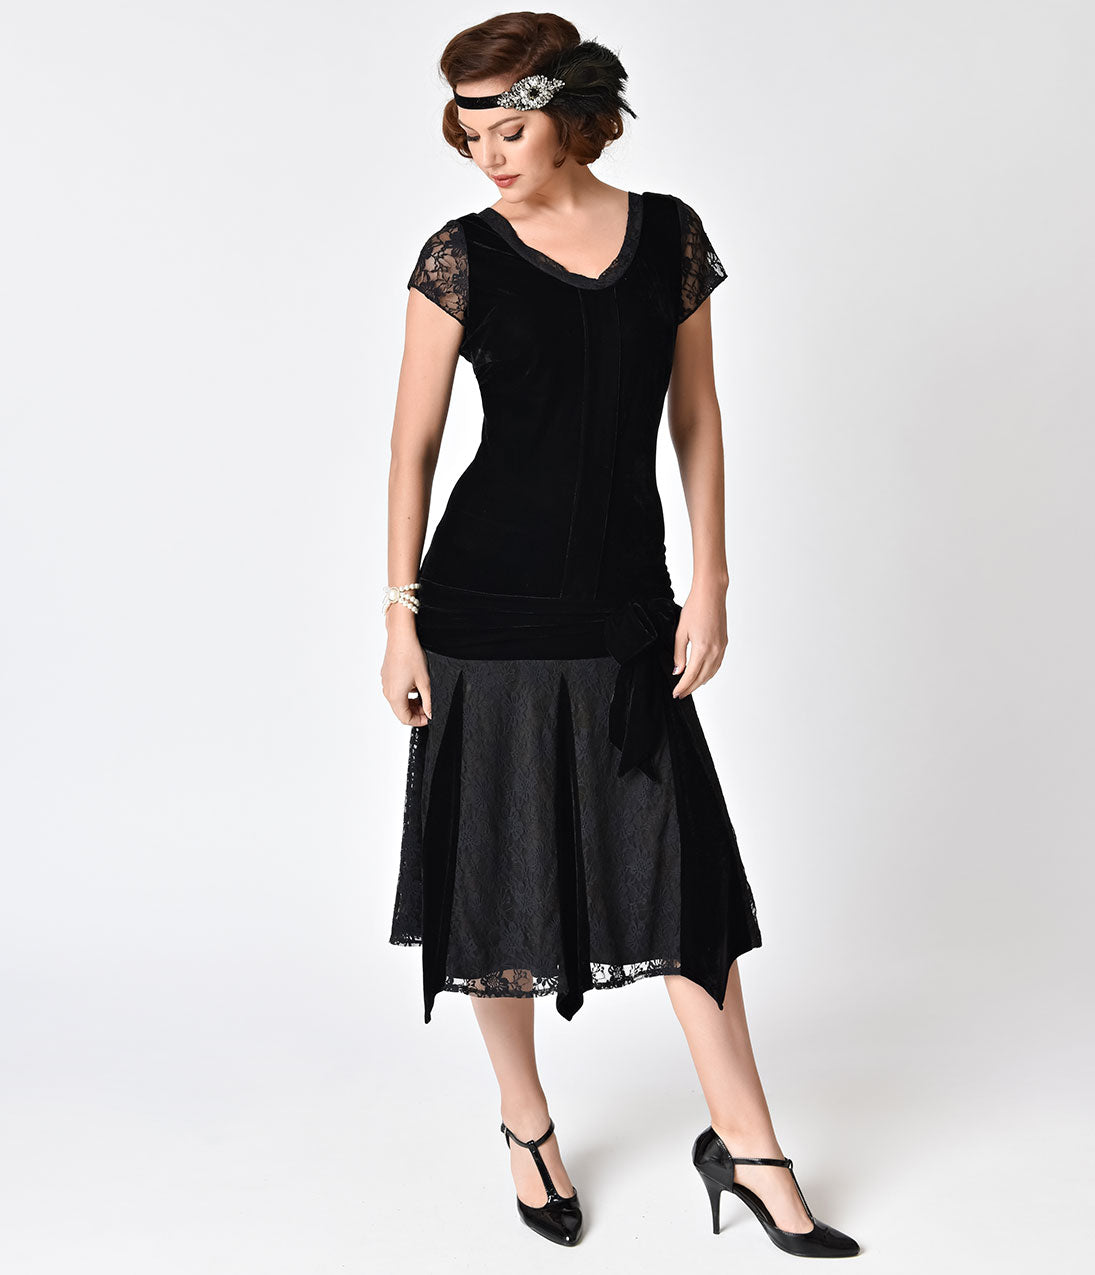 1920s Flapper Costume : How to Guide 1920s Velvet Millie Flapper Dress $83.00 AT vintagedancer.com